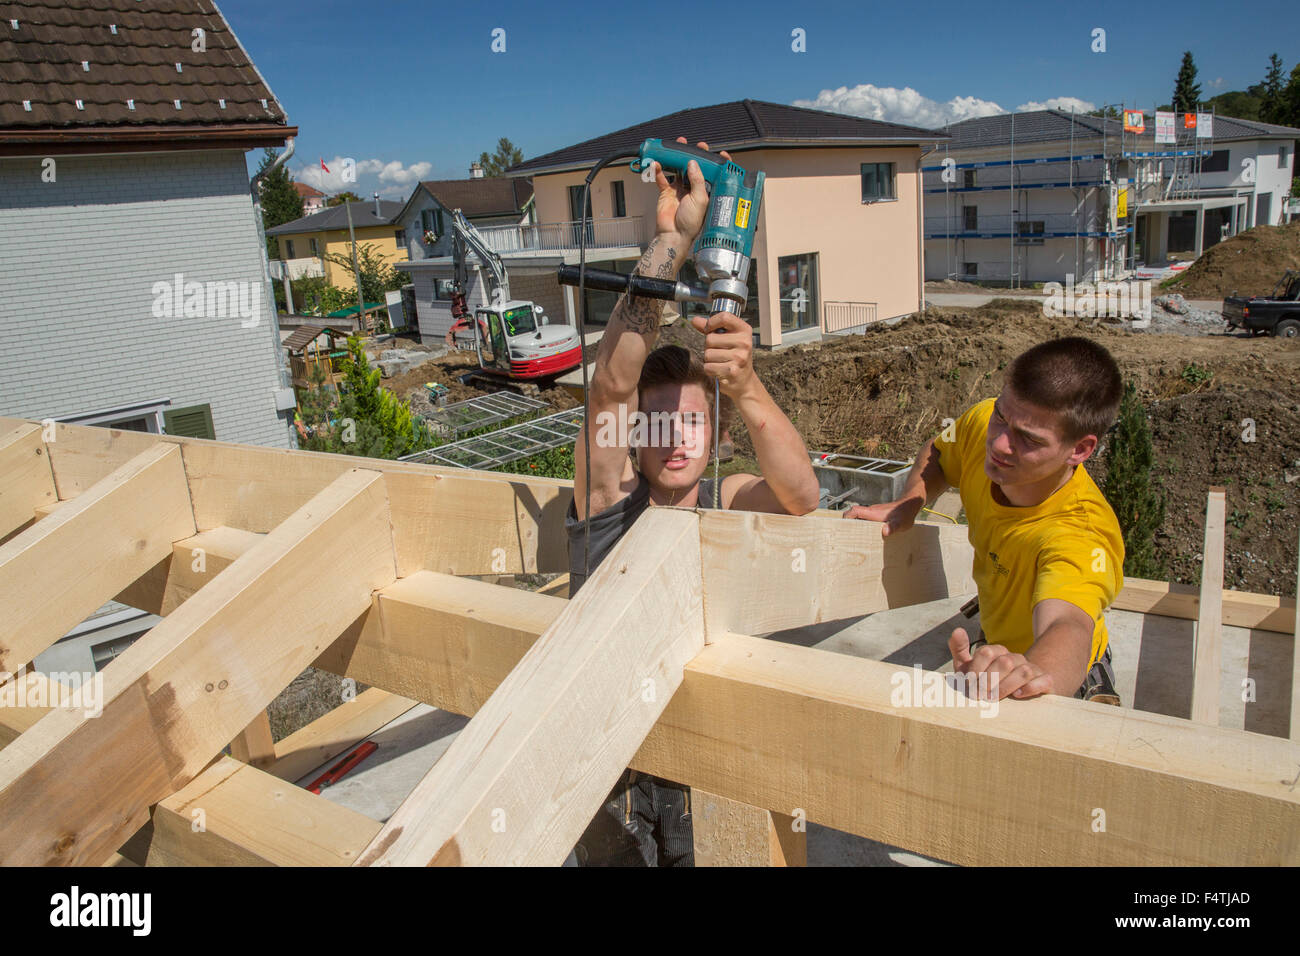 timber-frame construction, wooden building, - Stock Image